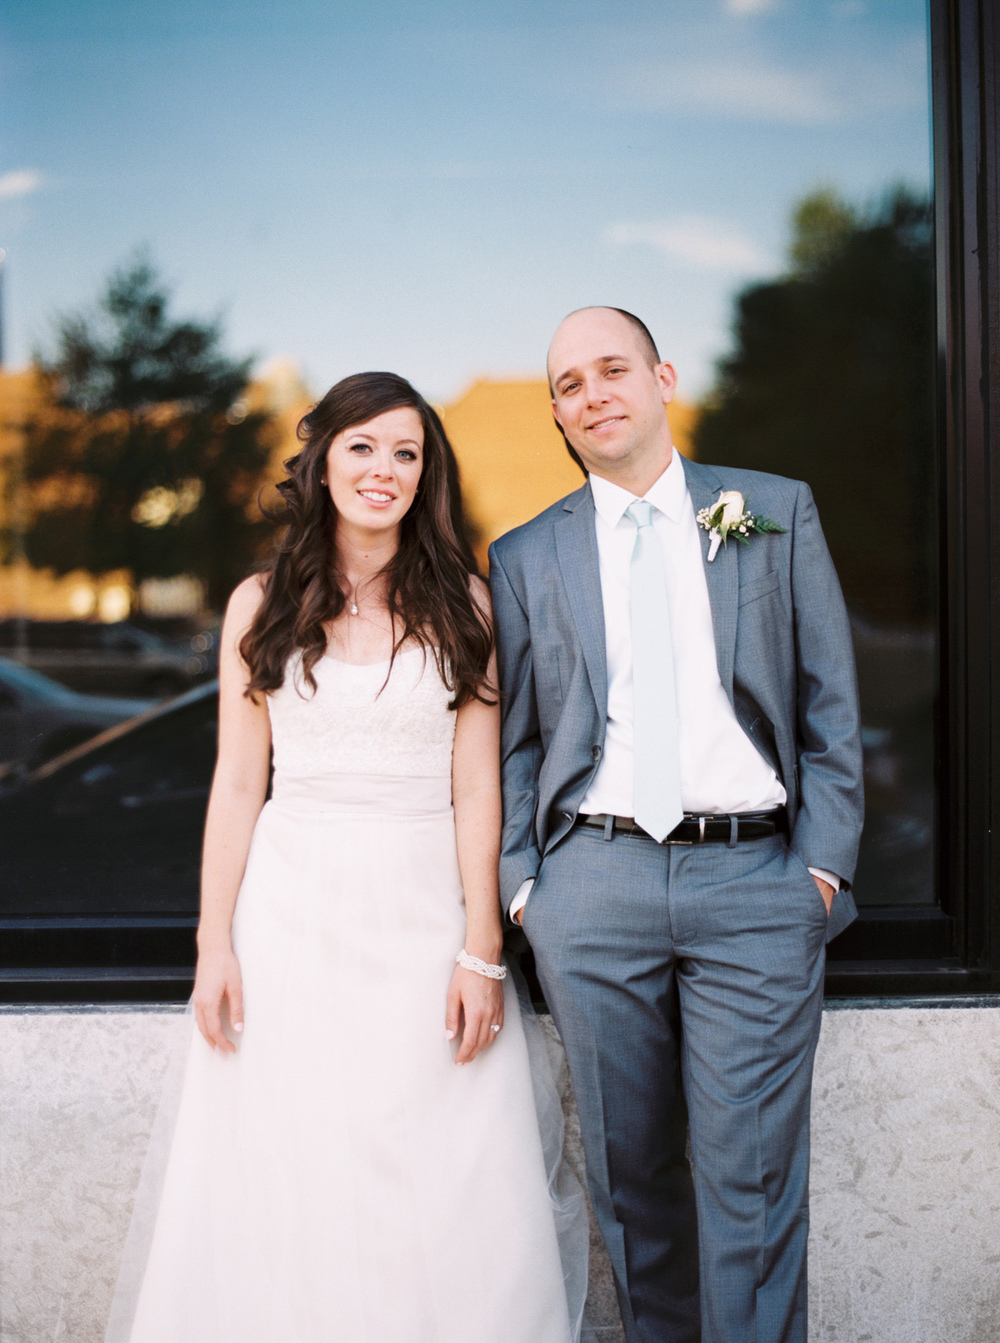 Oldani-Photography-St-Louis-Film-Photographer-Schlafly-Tap-Room-Wedding-Reception8603_03.jpg